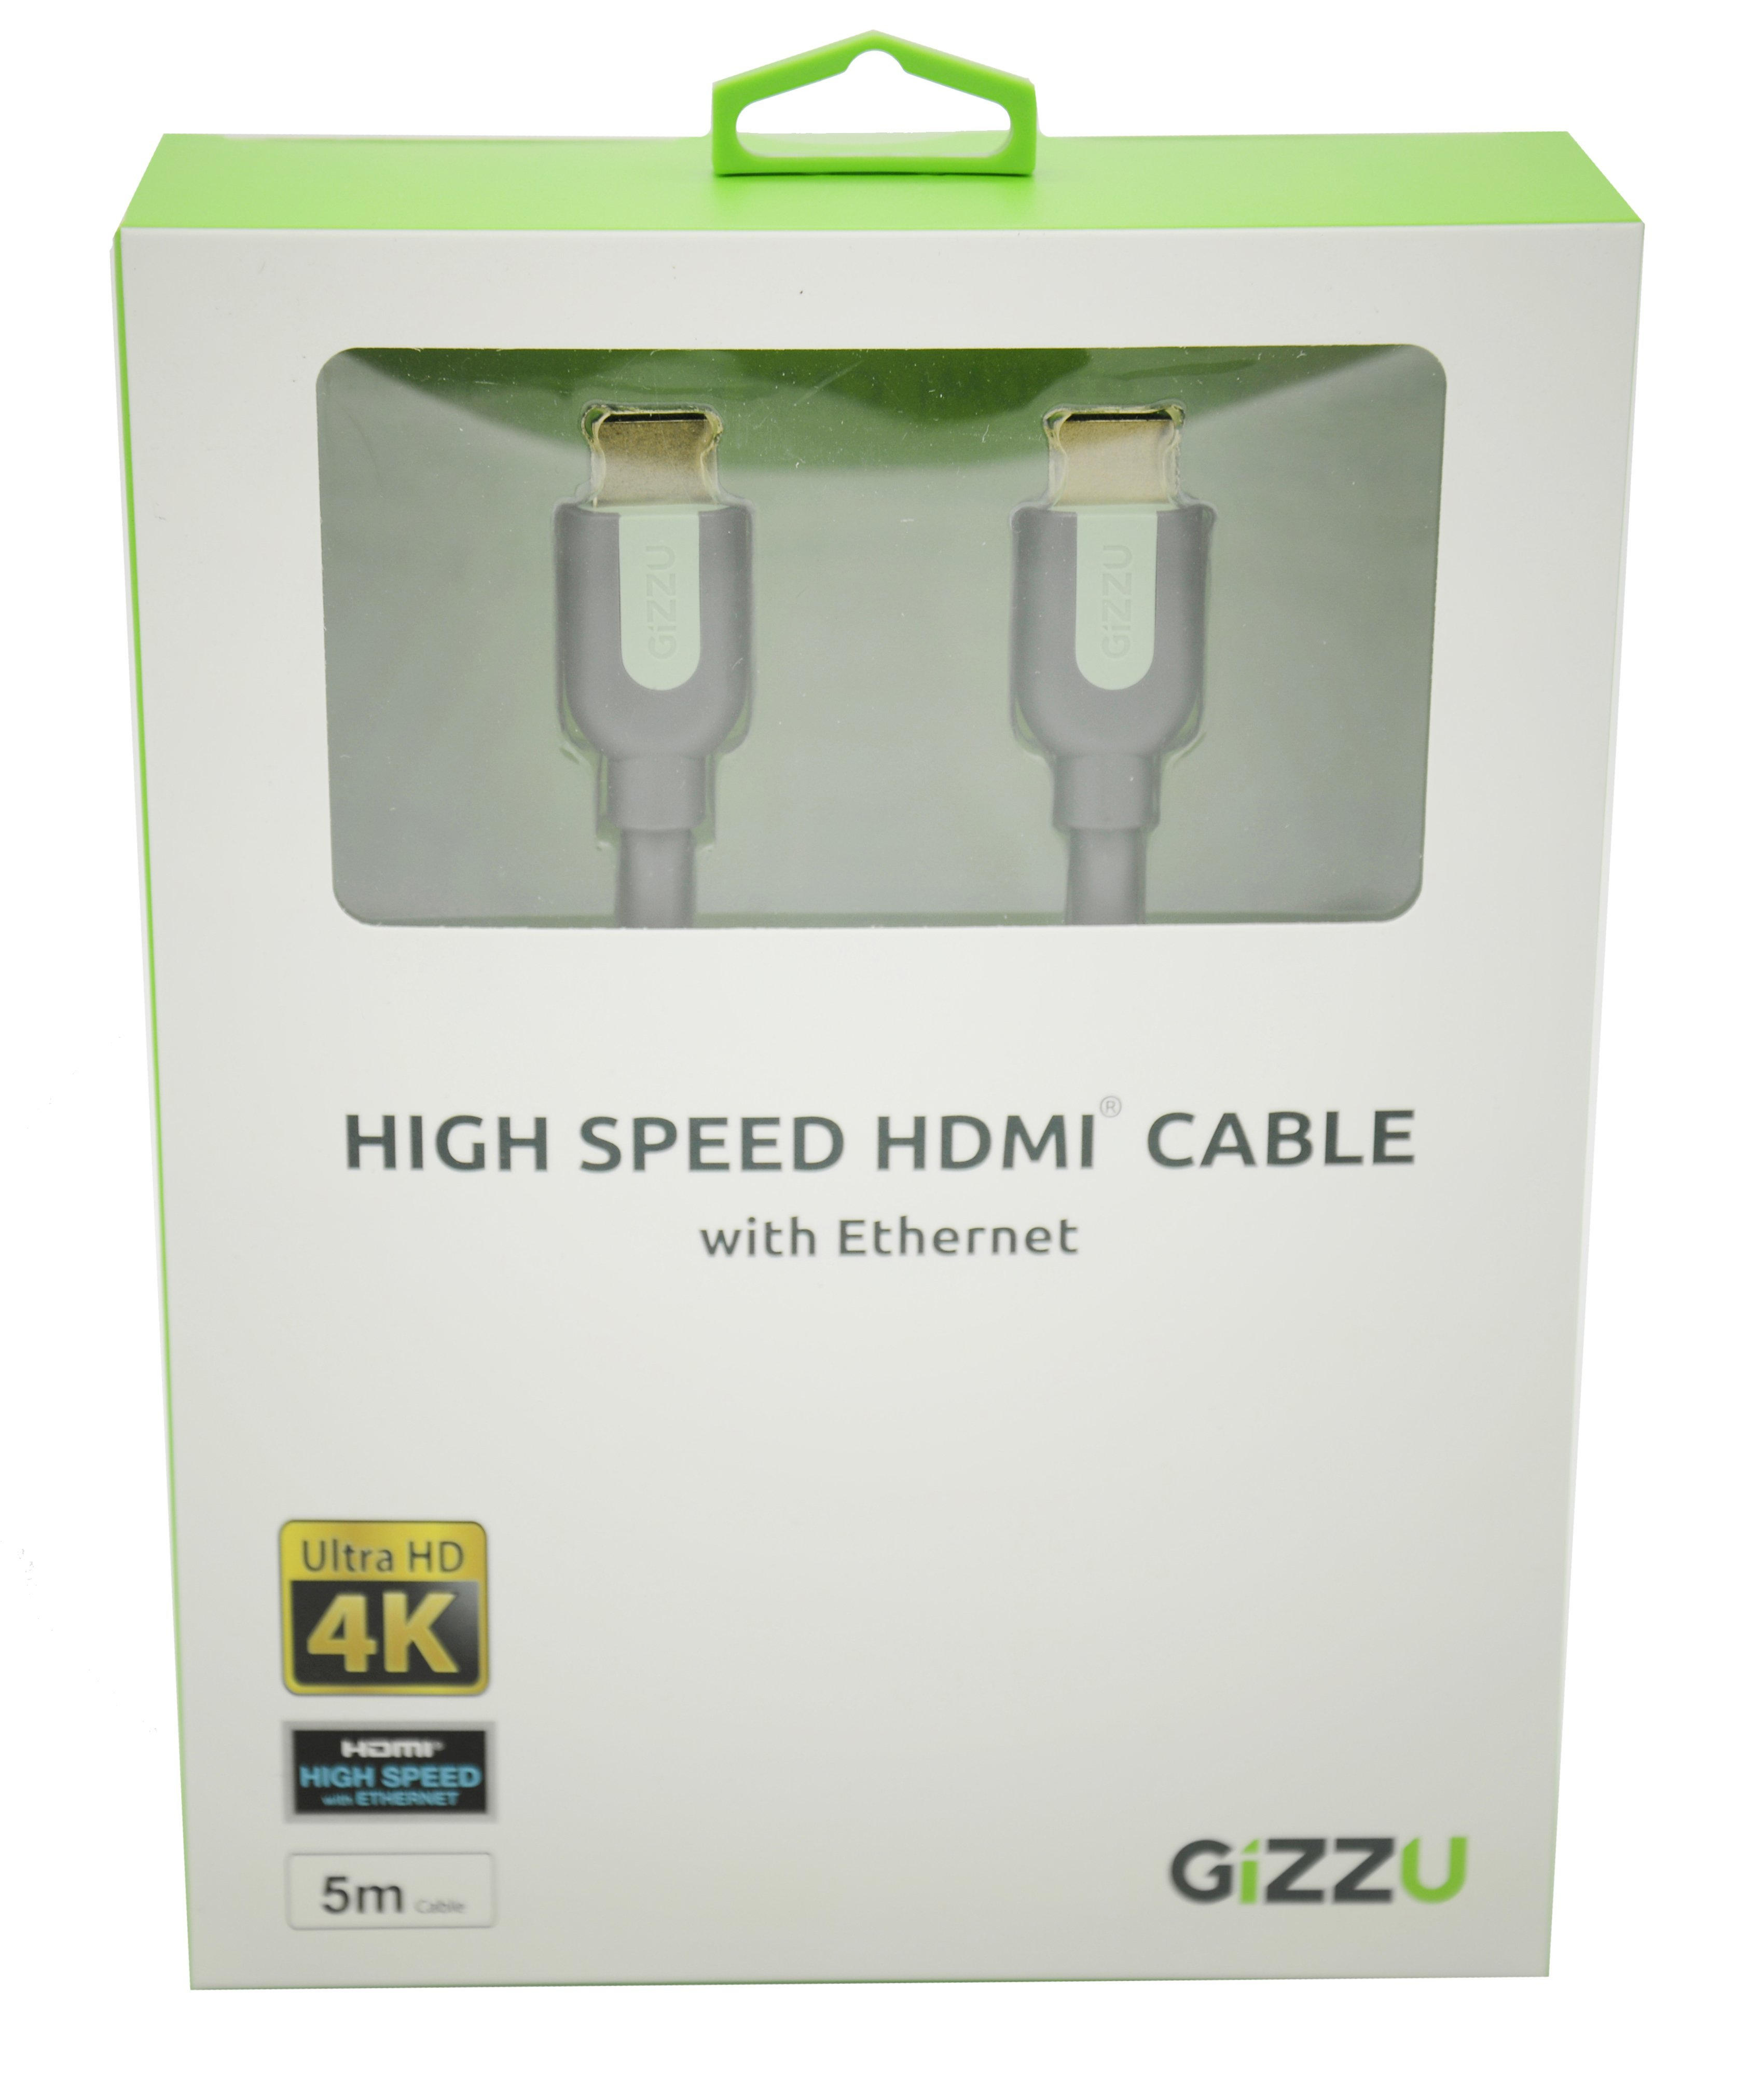 Gizzu High Speed 5m HDMI Cable with Ethernet